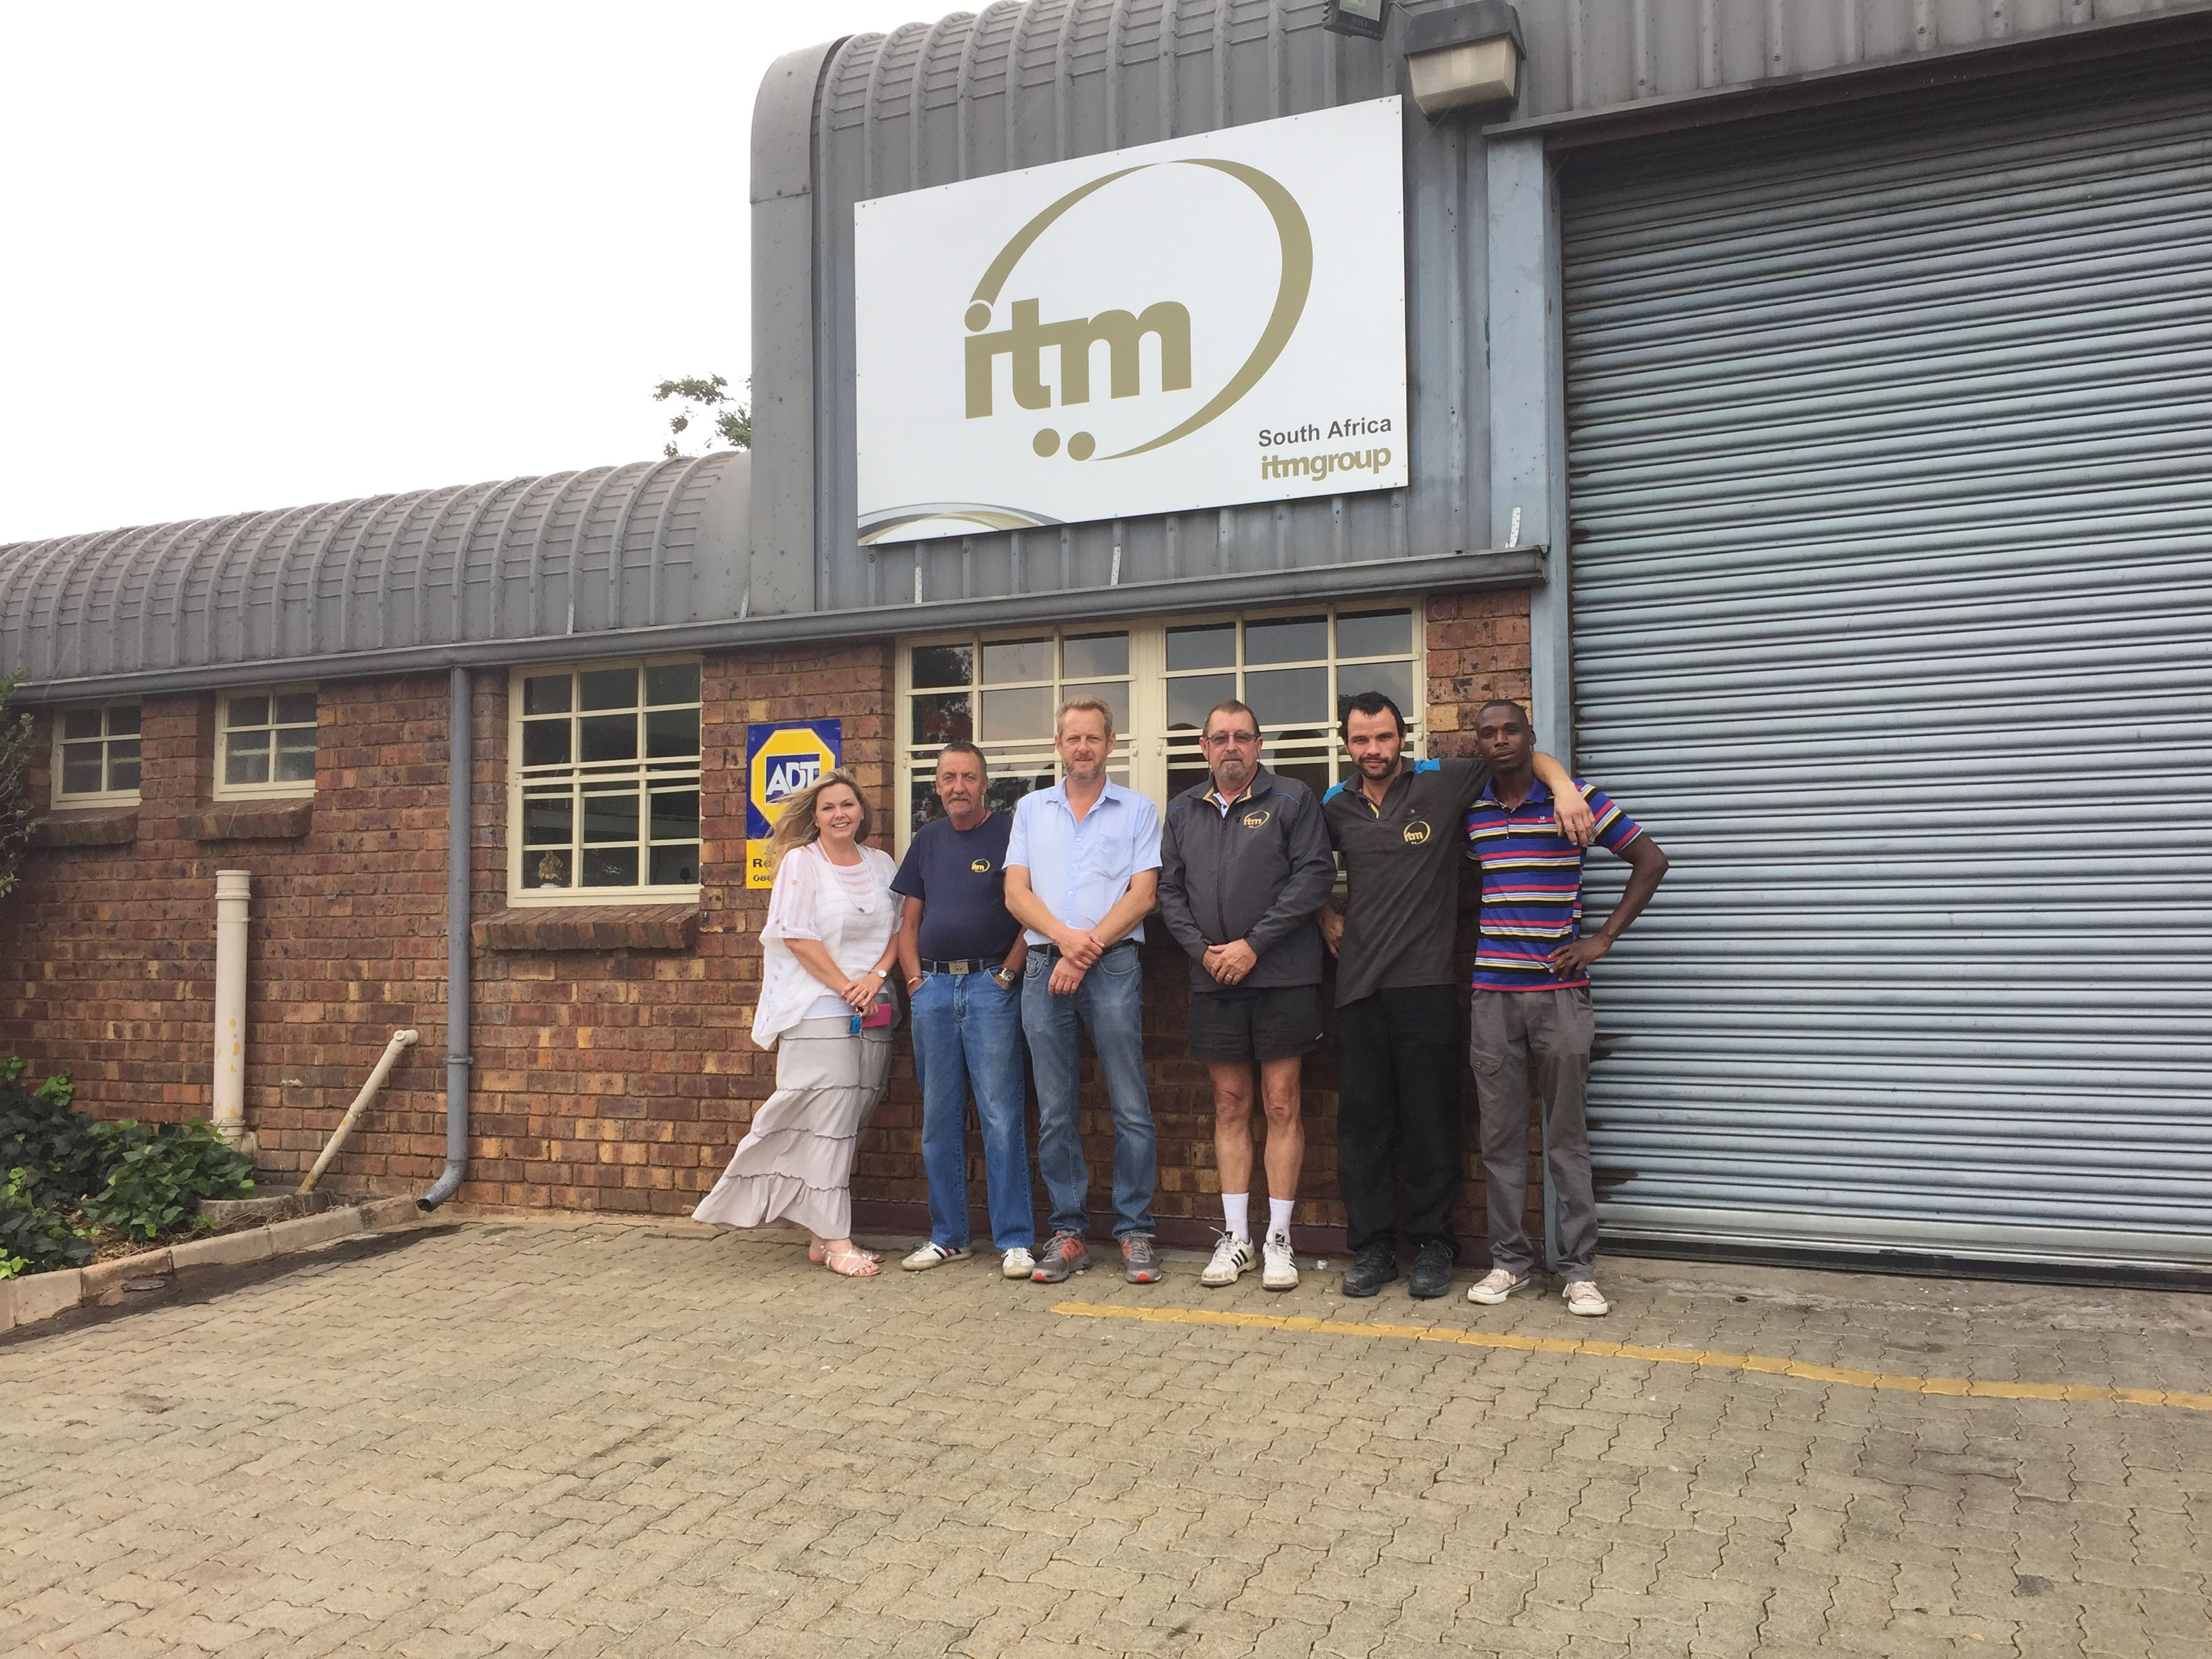 ITM Service Centre Africa